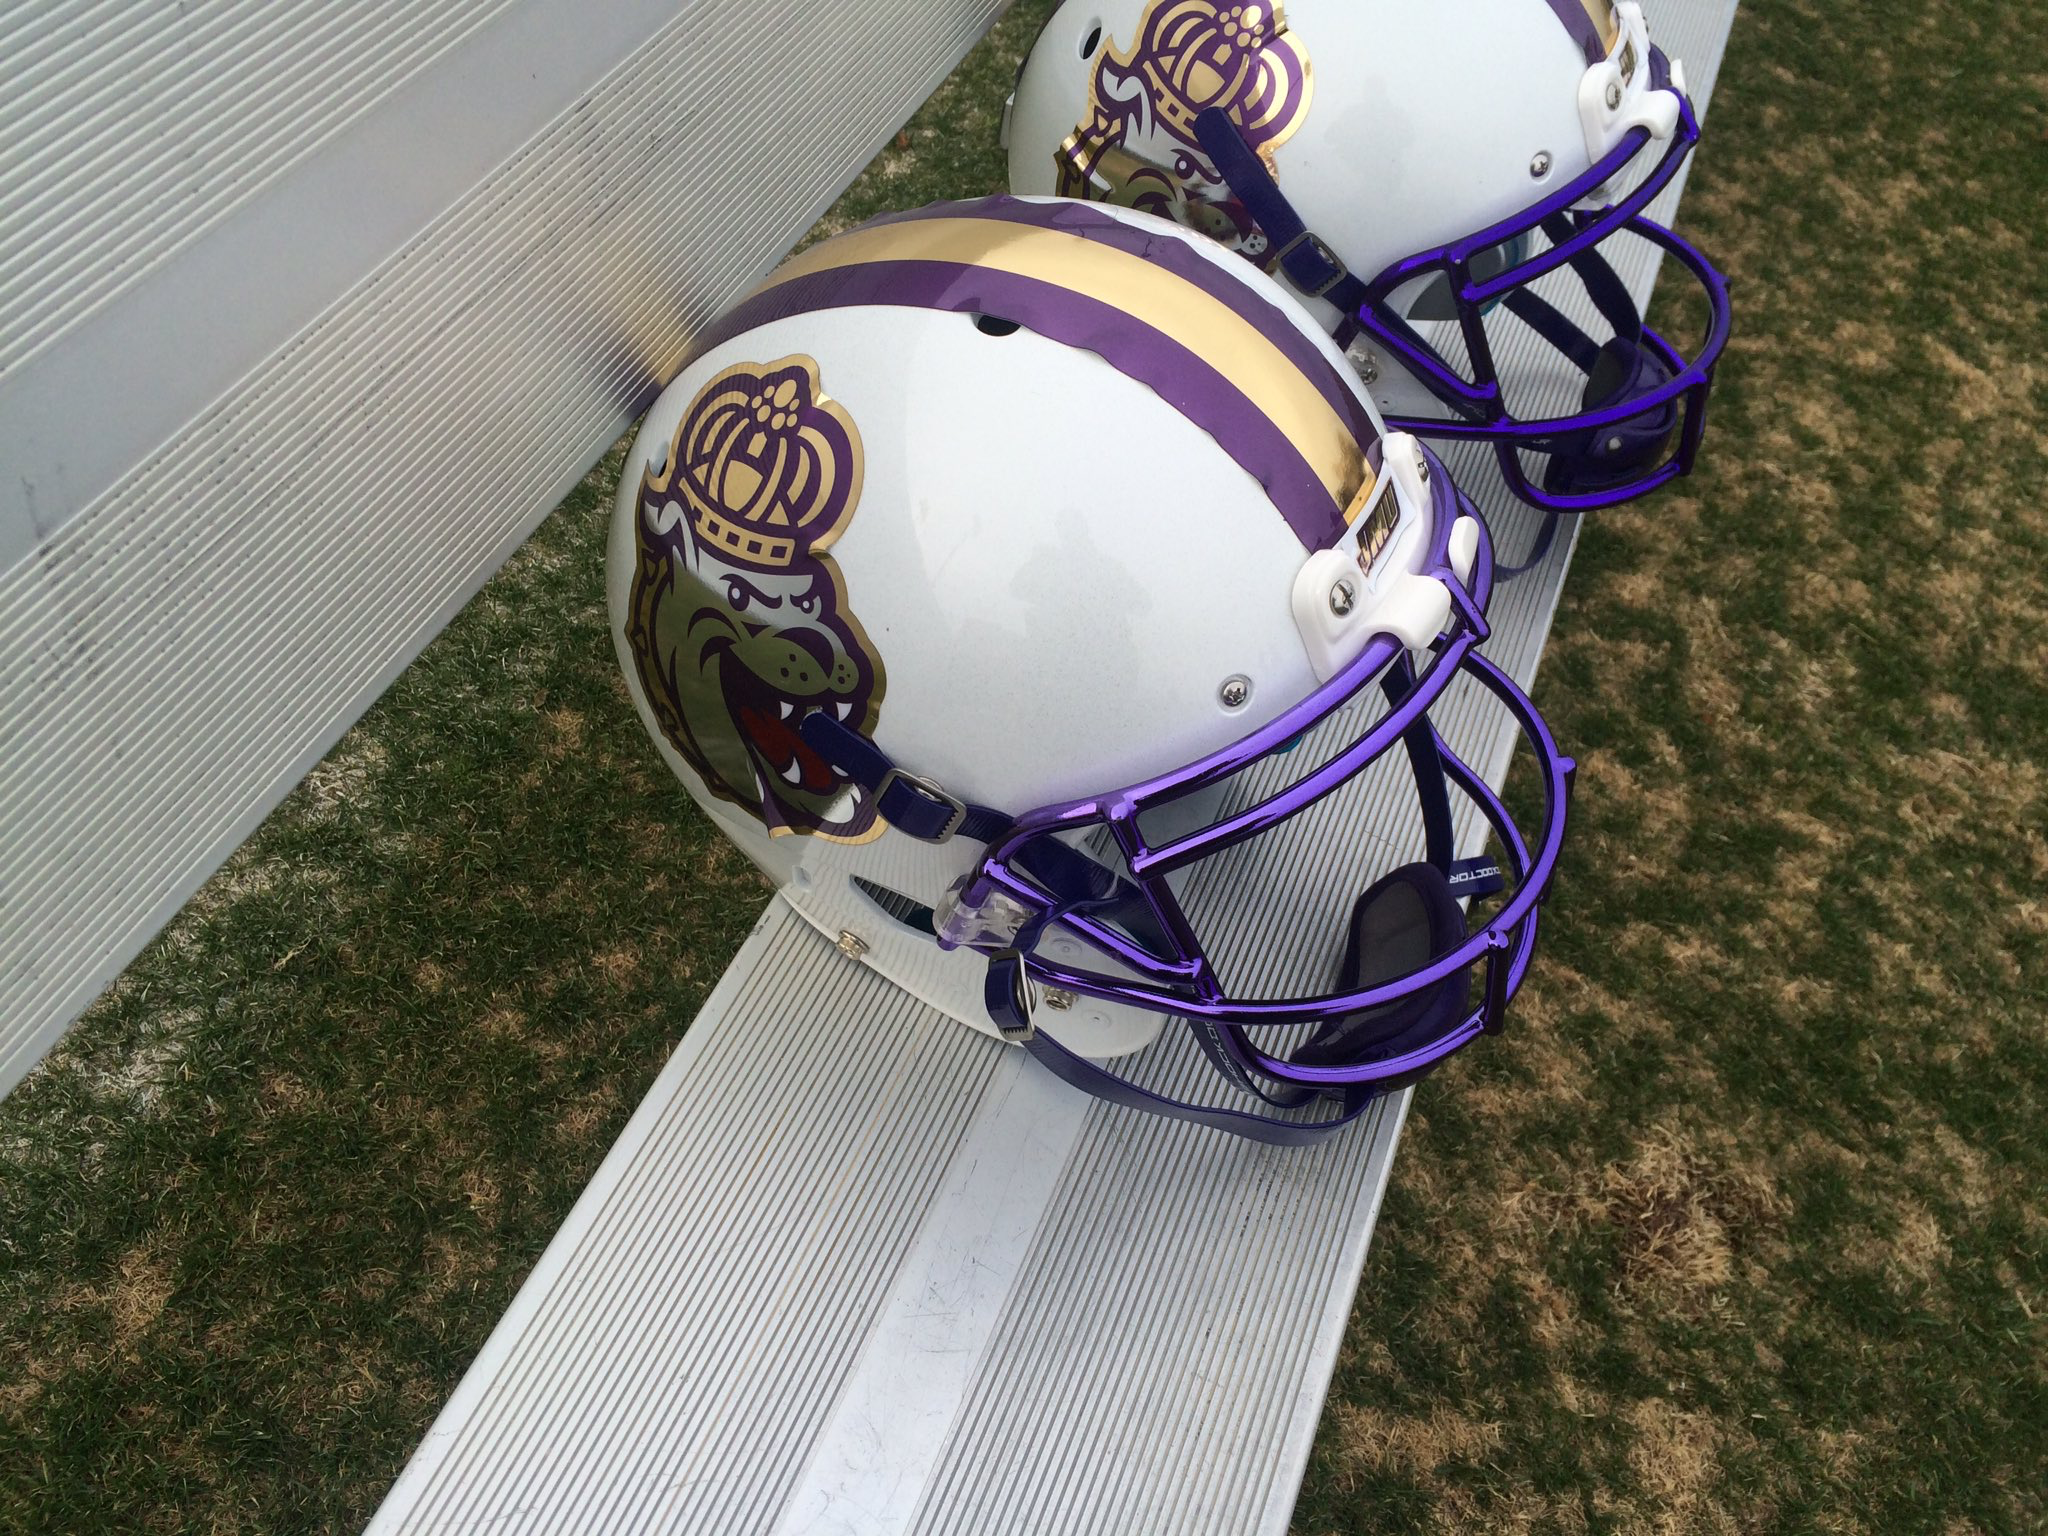 Slight Tweak To The Logo The Crown Is Now Gold For The Helmets